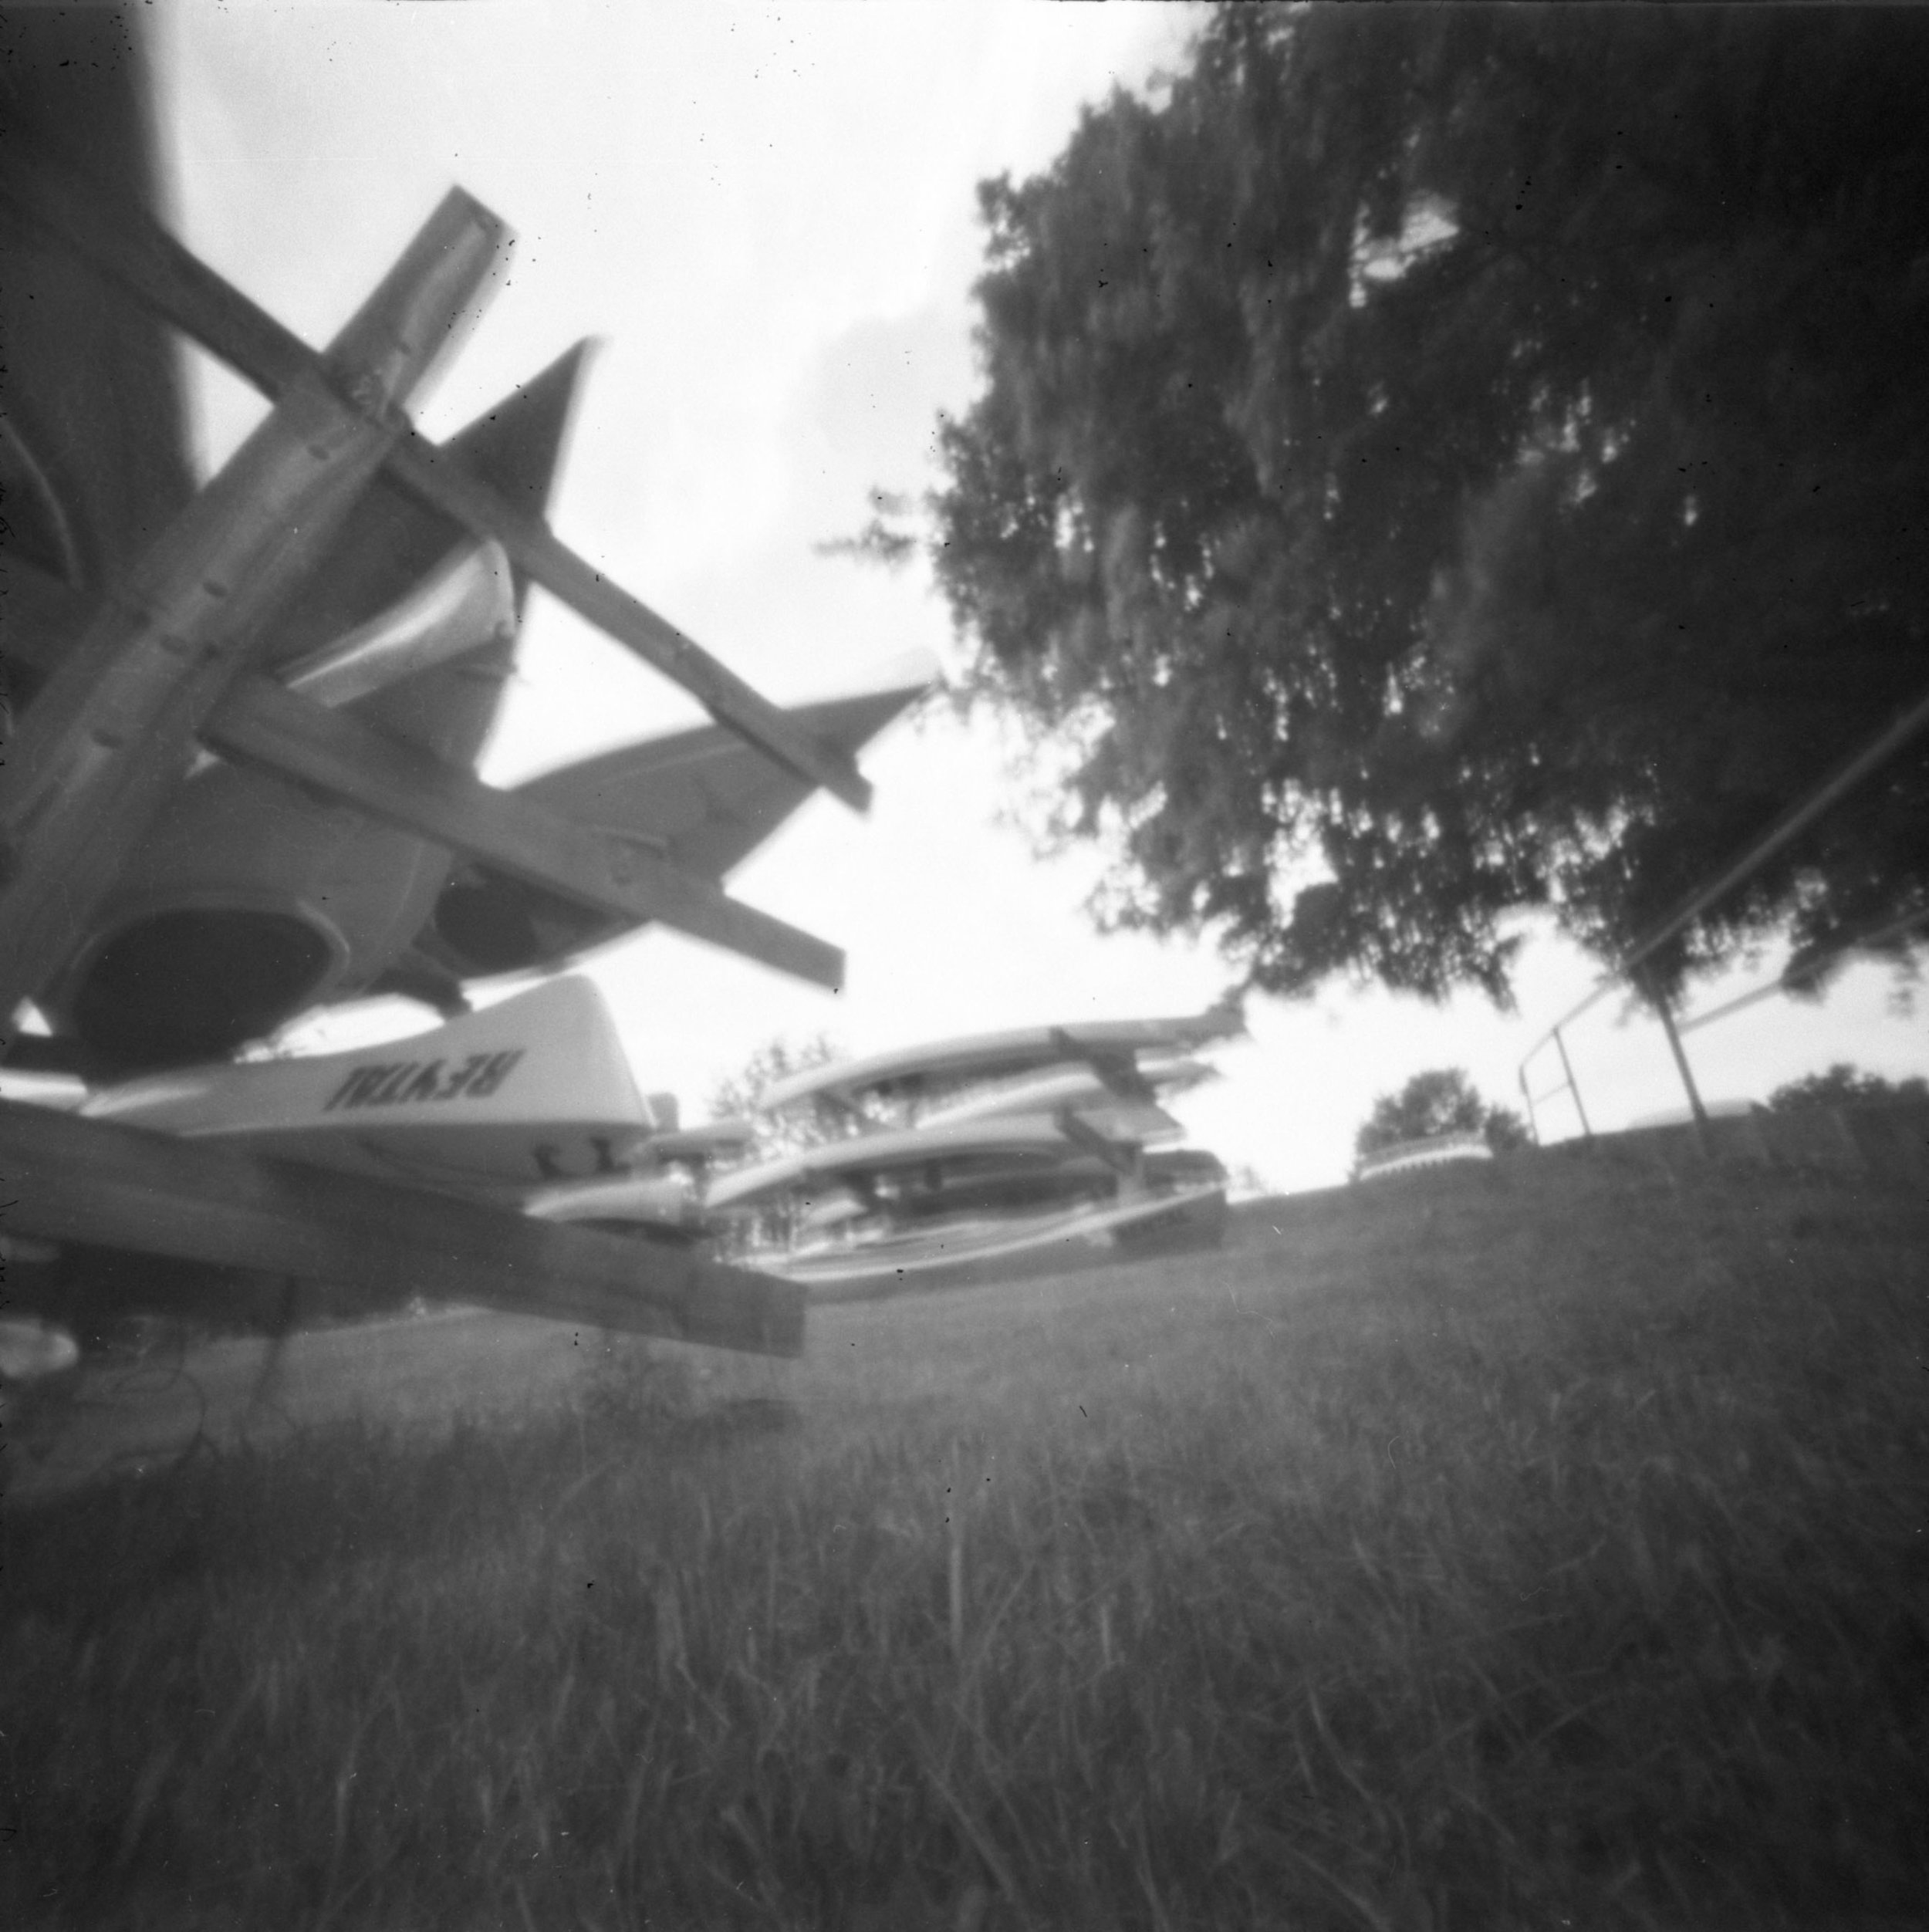 tree_boats_blurred.jpg